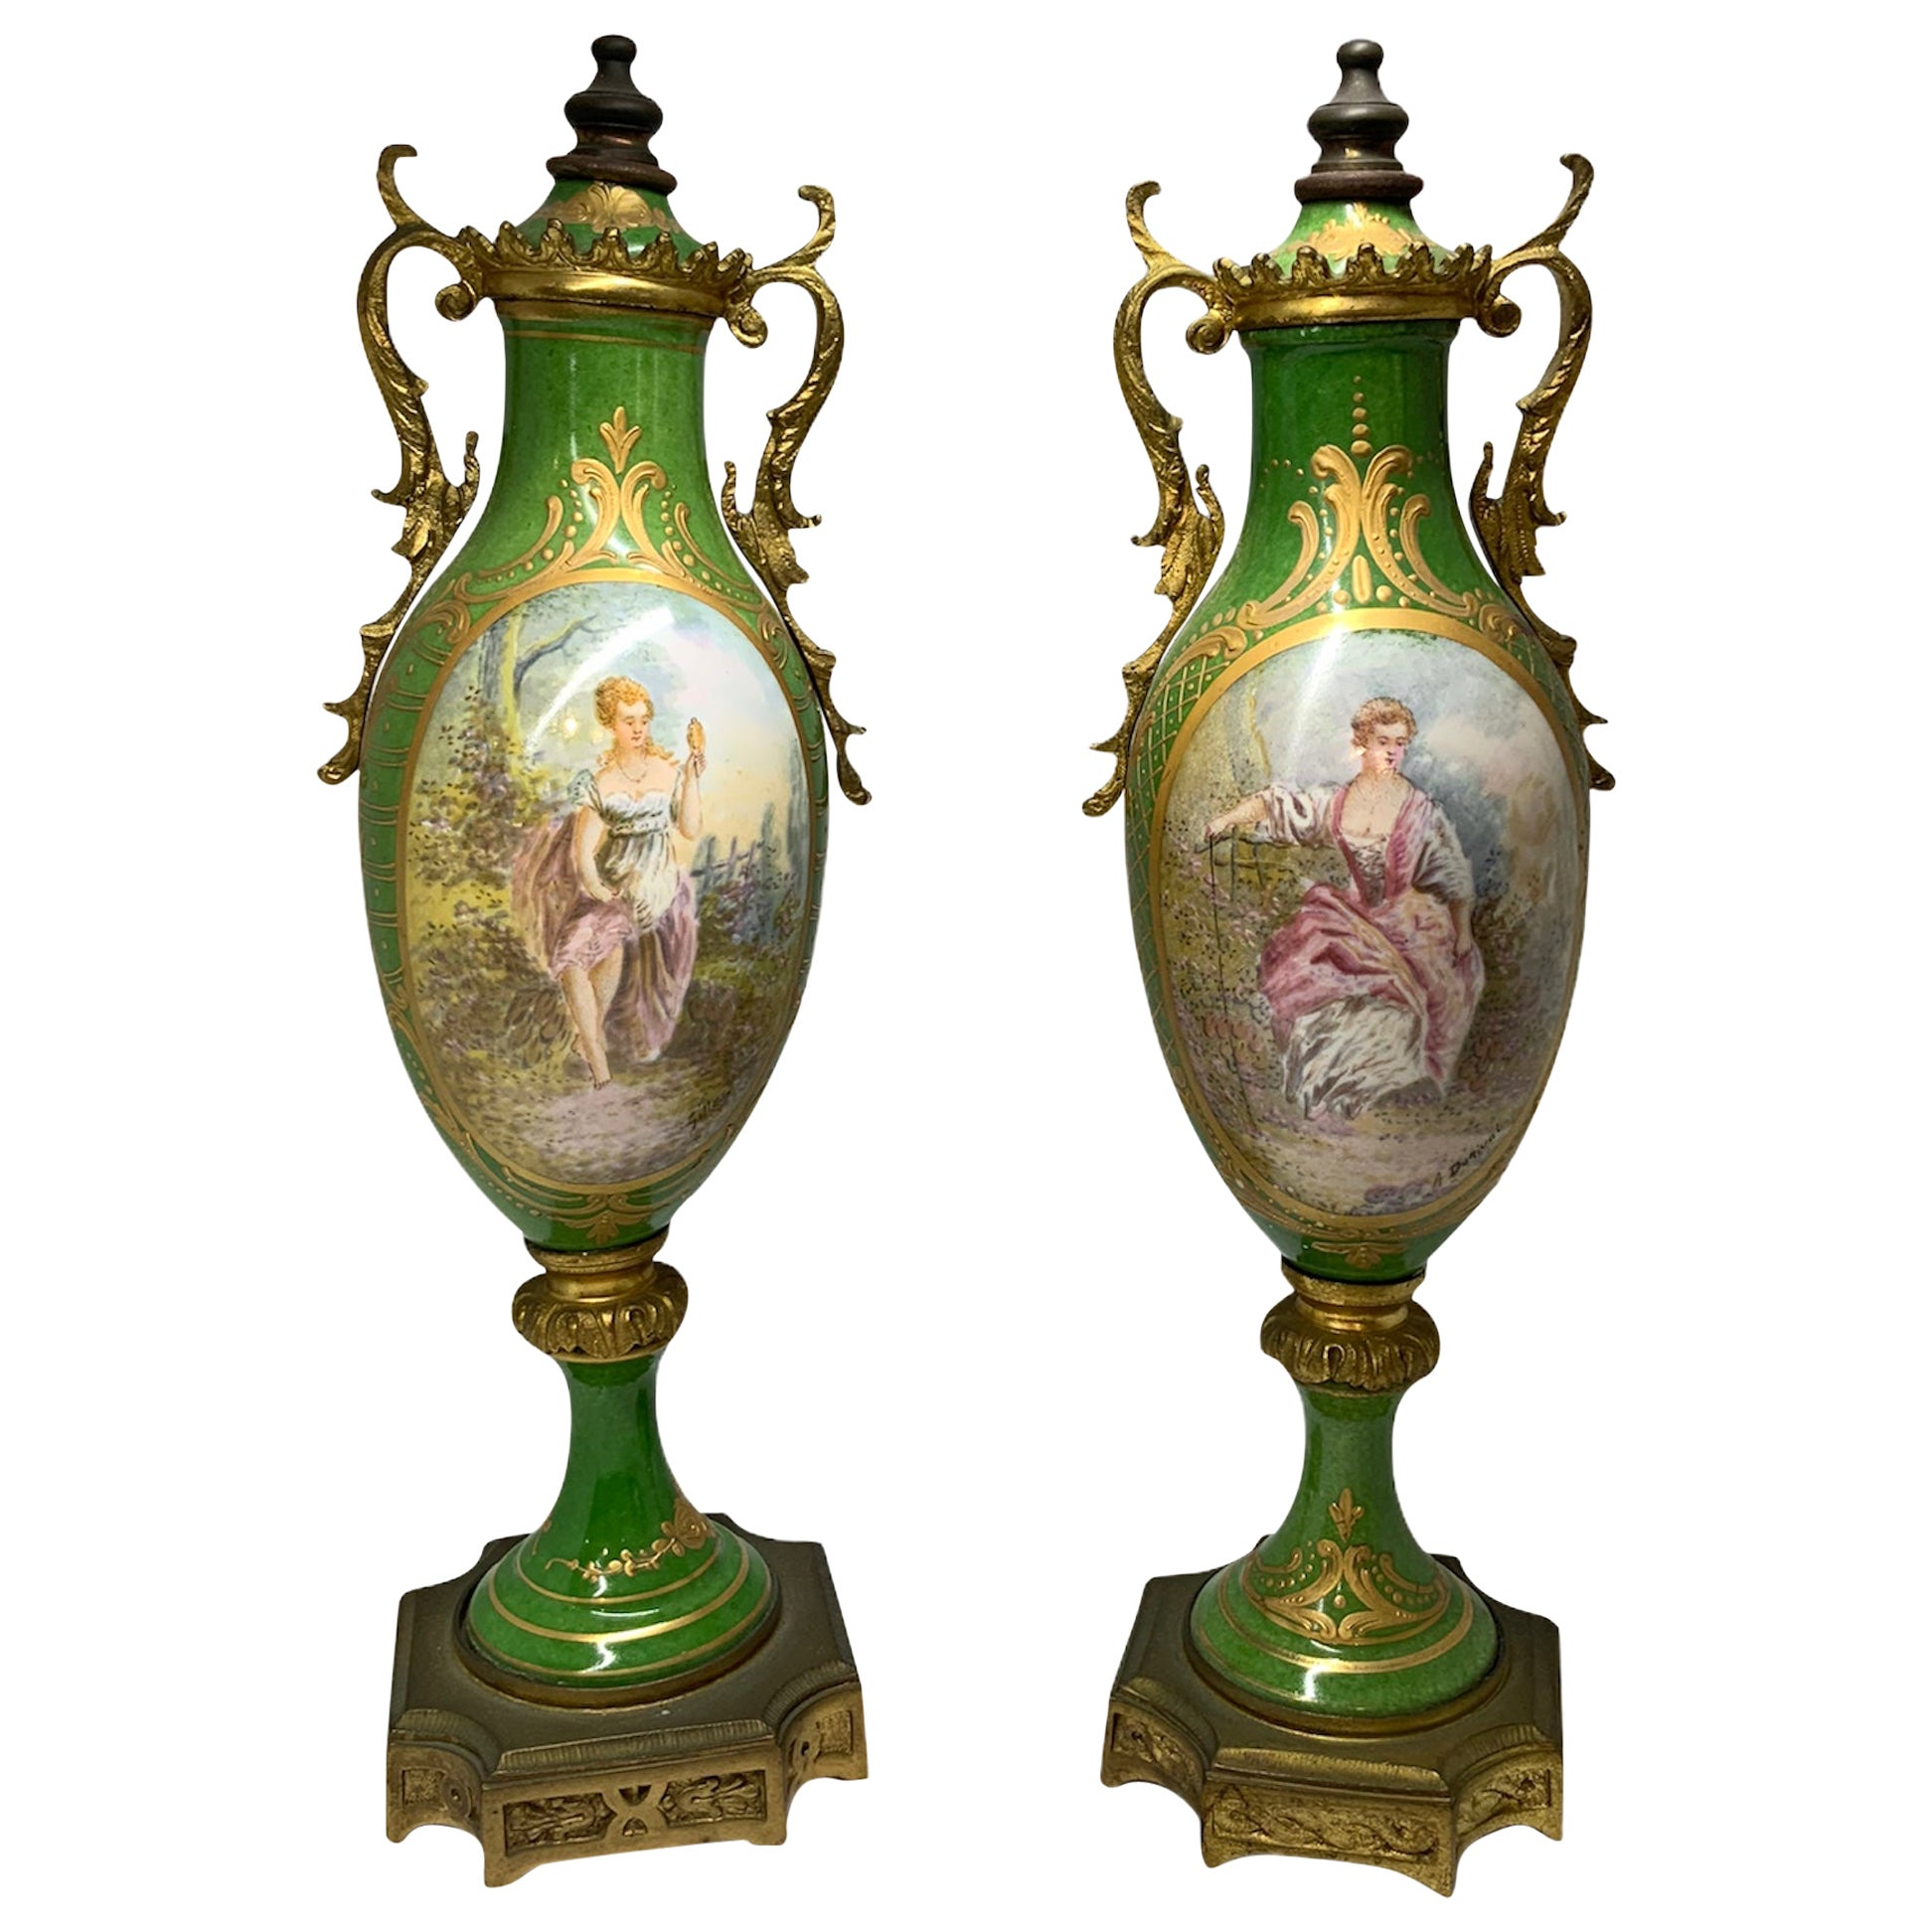 Pair of French Sevres Style Porcelain Bronze Mounted Urns Vases